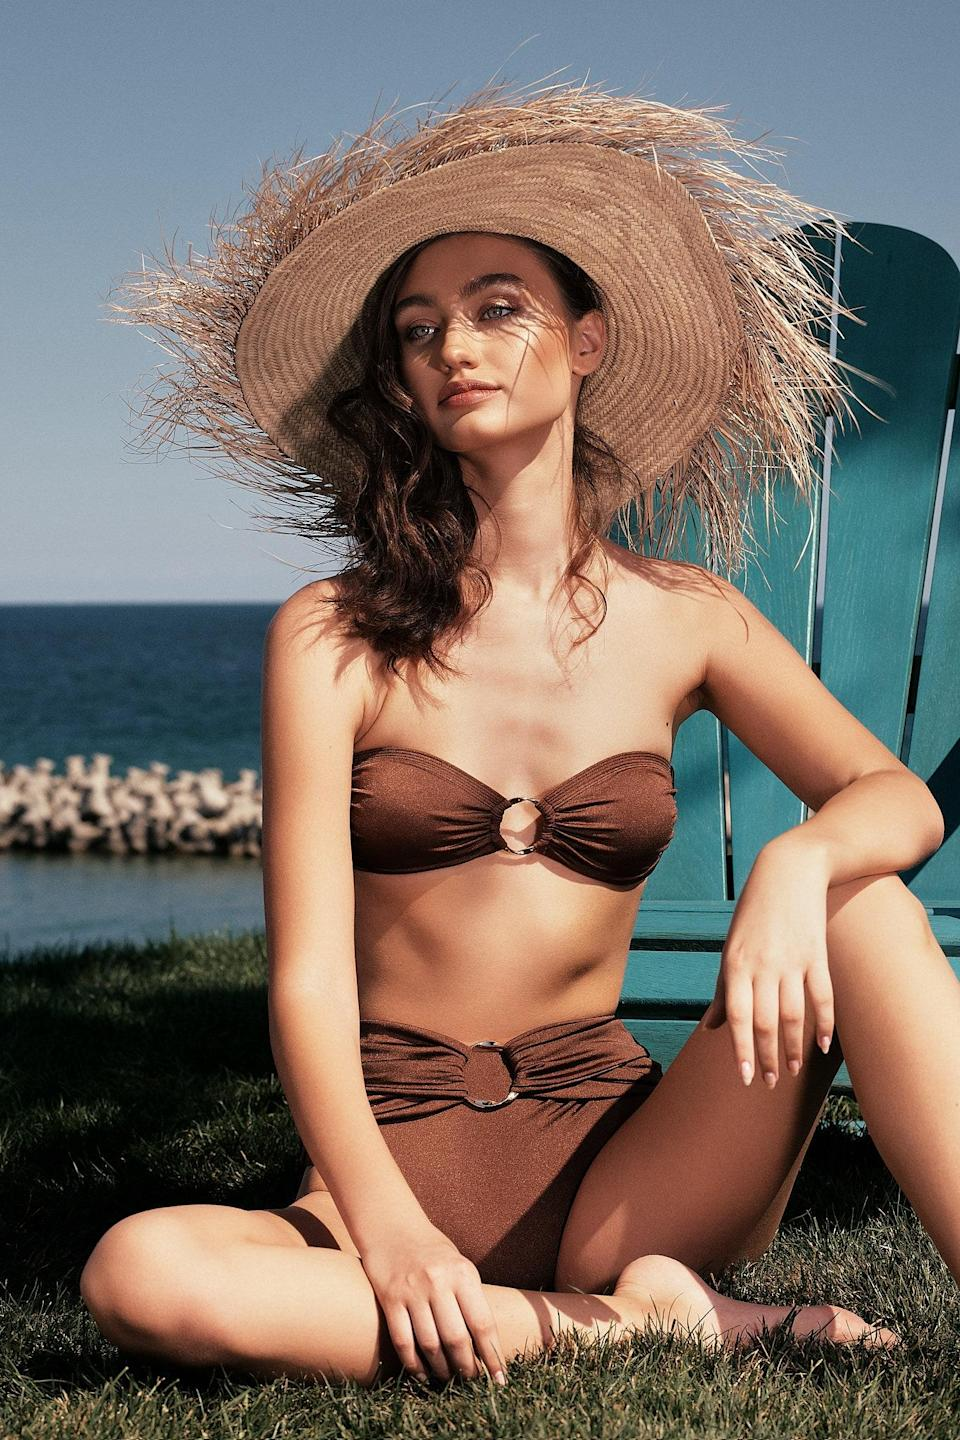 """<p>Founded in 2020 in Bucharest, Sofia Erhan set out to create the perfect line of swimwear, suitable for every woman's body. This summer they are restocking the coveted 2020 Neutrals collection with the addition of an exclusive new design, featuring custom-made fabrics and exceptional workmanship. <a href=""""https://sofiaerhan.ro/en"""" rel=""""nofollow noopener"""" target=""""_blank"""" data-ylk=""""slk:sofiaerhan.ro"""" class=""""link rapid-noclick-resp"""">sofiaerhan.ro</a></p> <p><em>Follow them on Instagram</em> <a href=""""https://www.instagram.com/sofiaerhan.ro/"""" rel=""""nofollow noopener"""" target=""""_blank"""" data-ylk=""""slk:@sofiaerhan.ro"""" class=""""link rapid-noclick-resp""""><em>@sofiaerhan.ro</em></a></p>"""